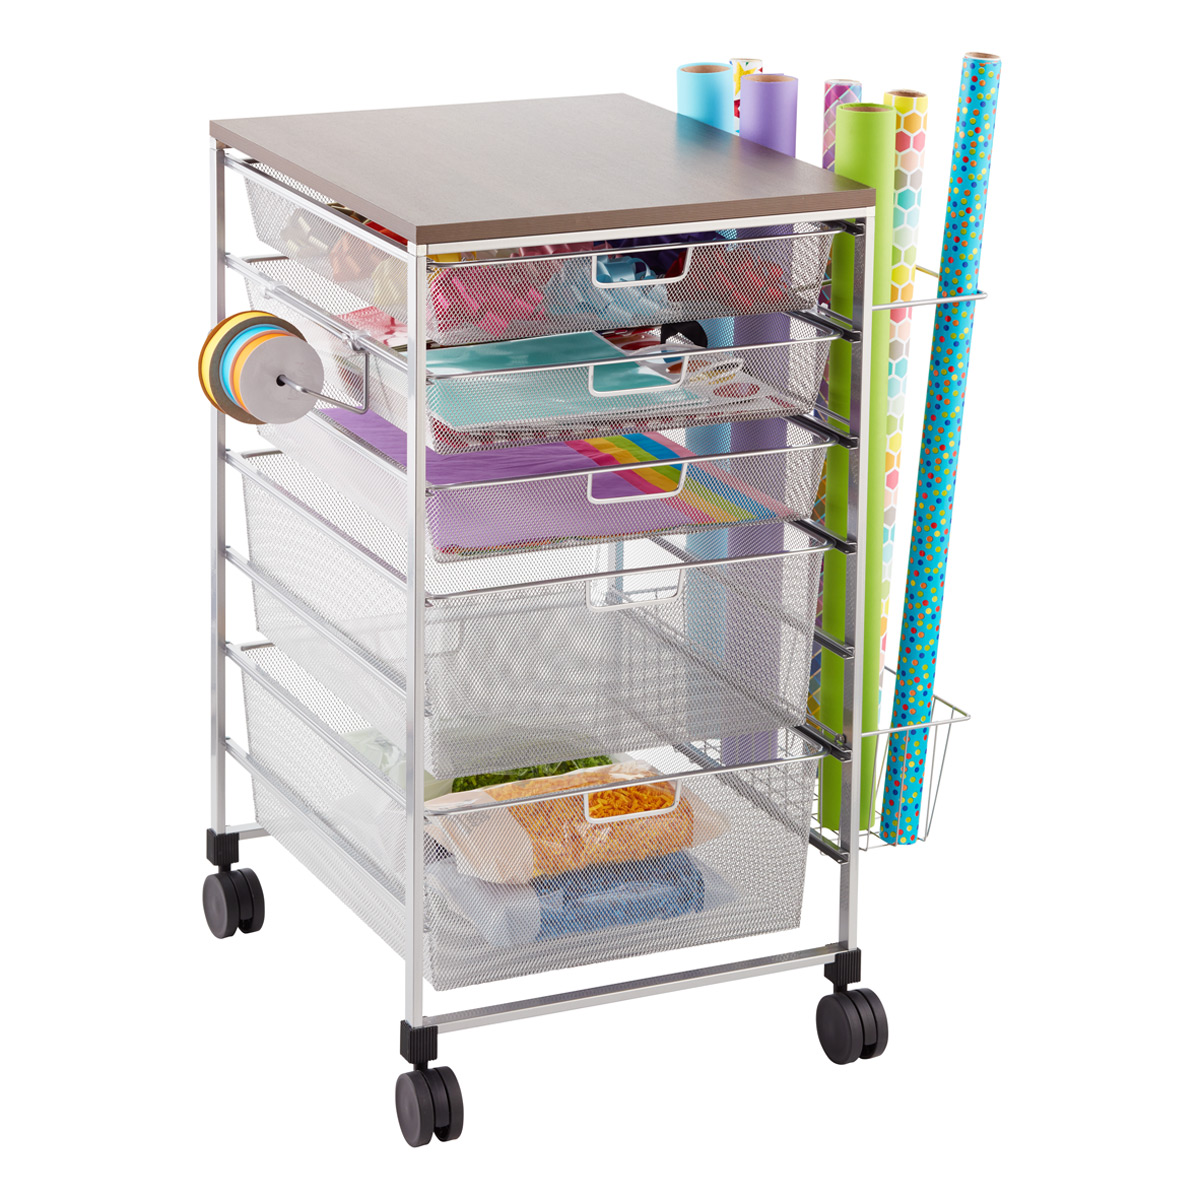 Gift Wrap Storage Container I7